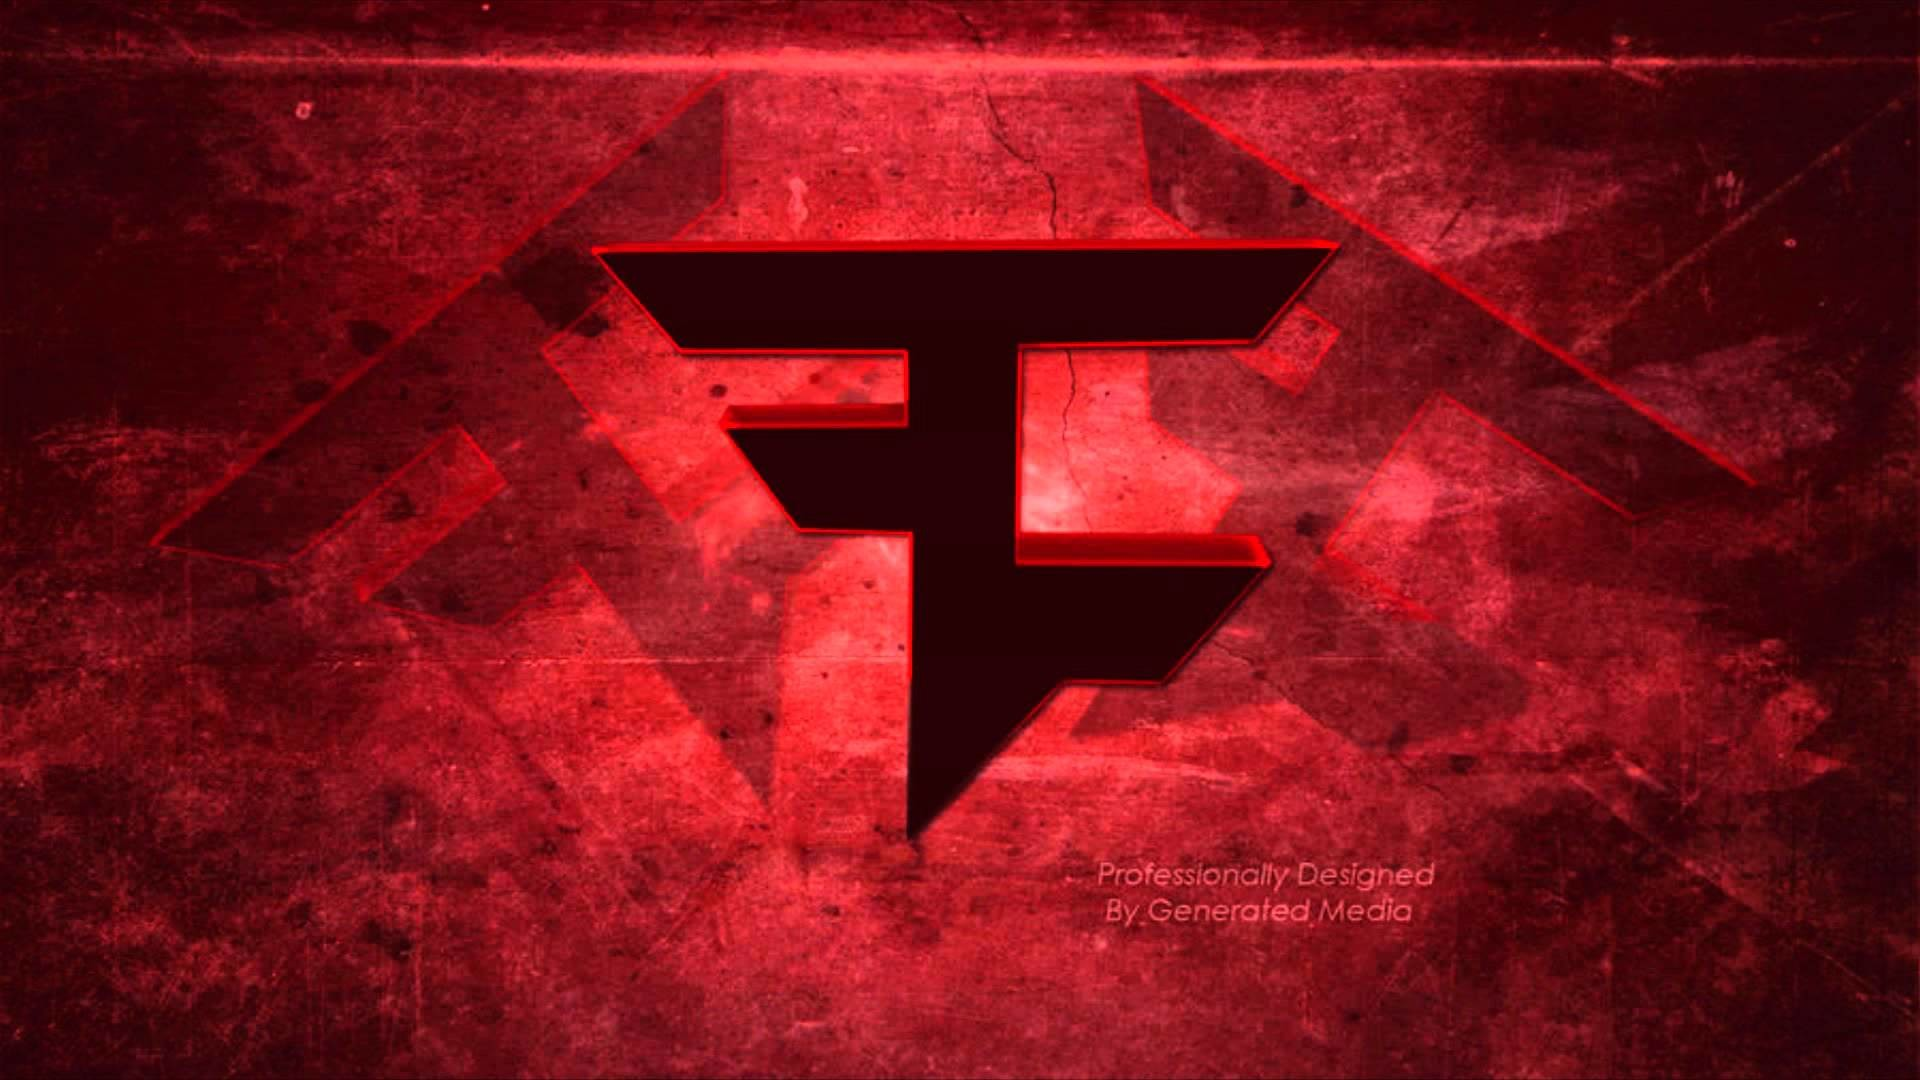 Sick Wallpapers For Iphone 5 Faze Clan Wallpaper Pack V4 86 Images